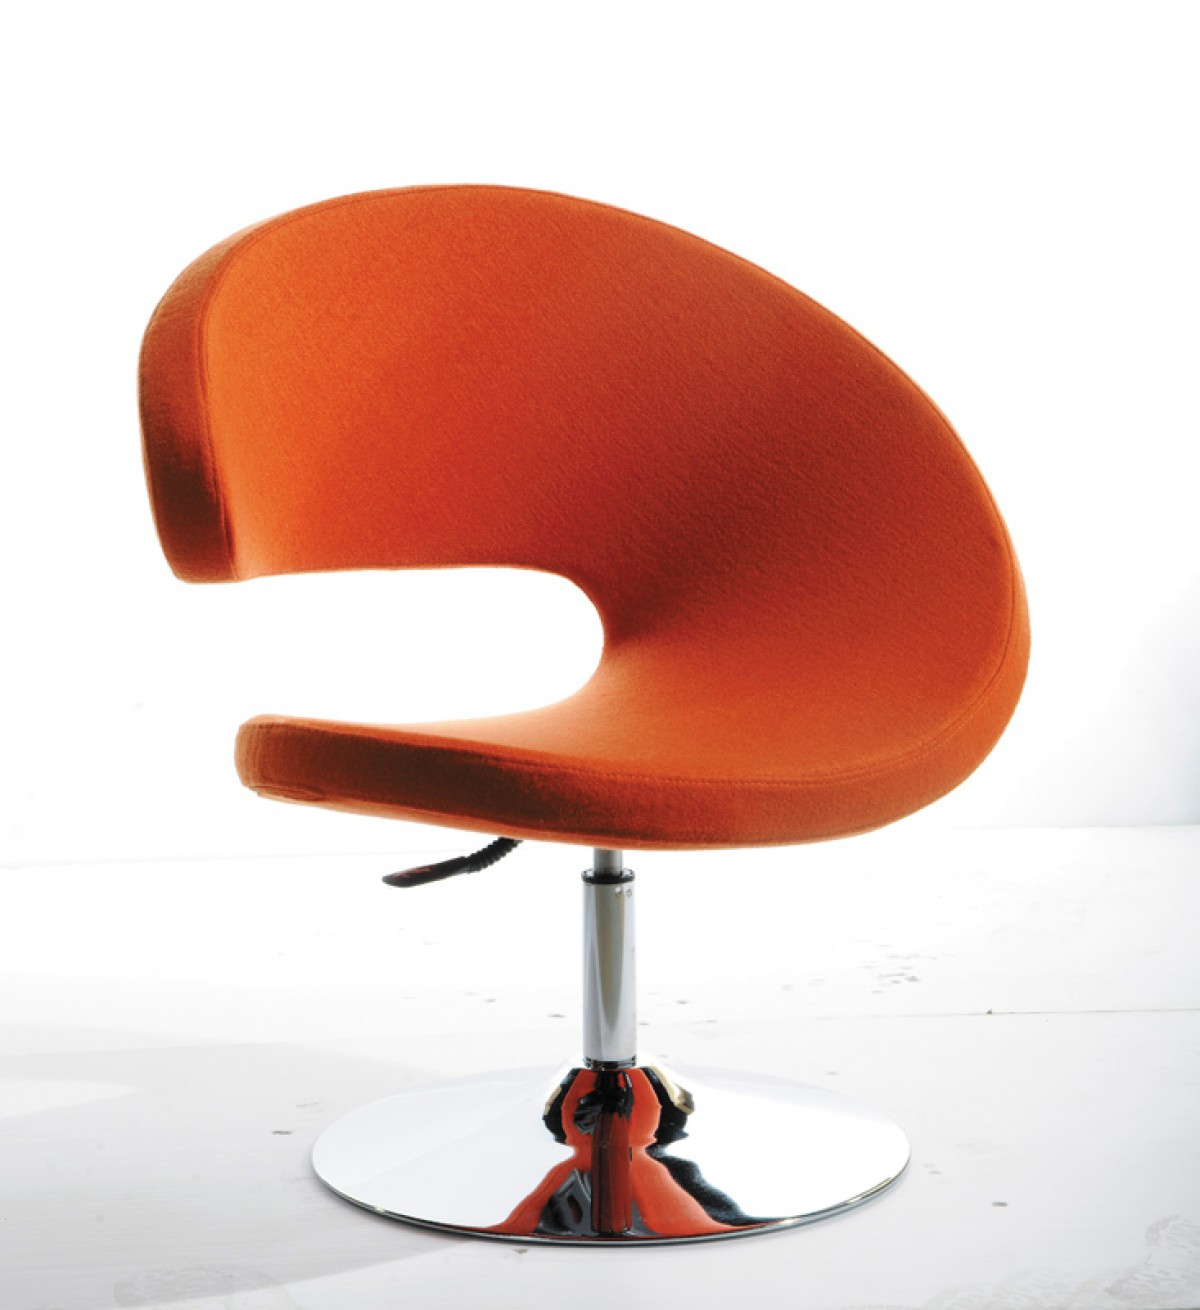 Modern Orange Chair Modrest Adara Modern Orange Fabric Lounge Chair Lounge